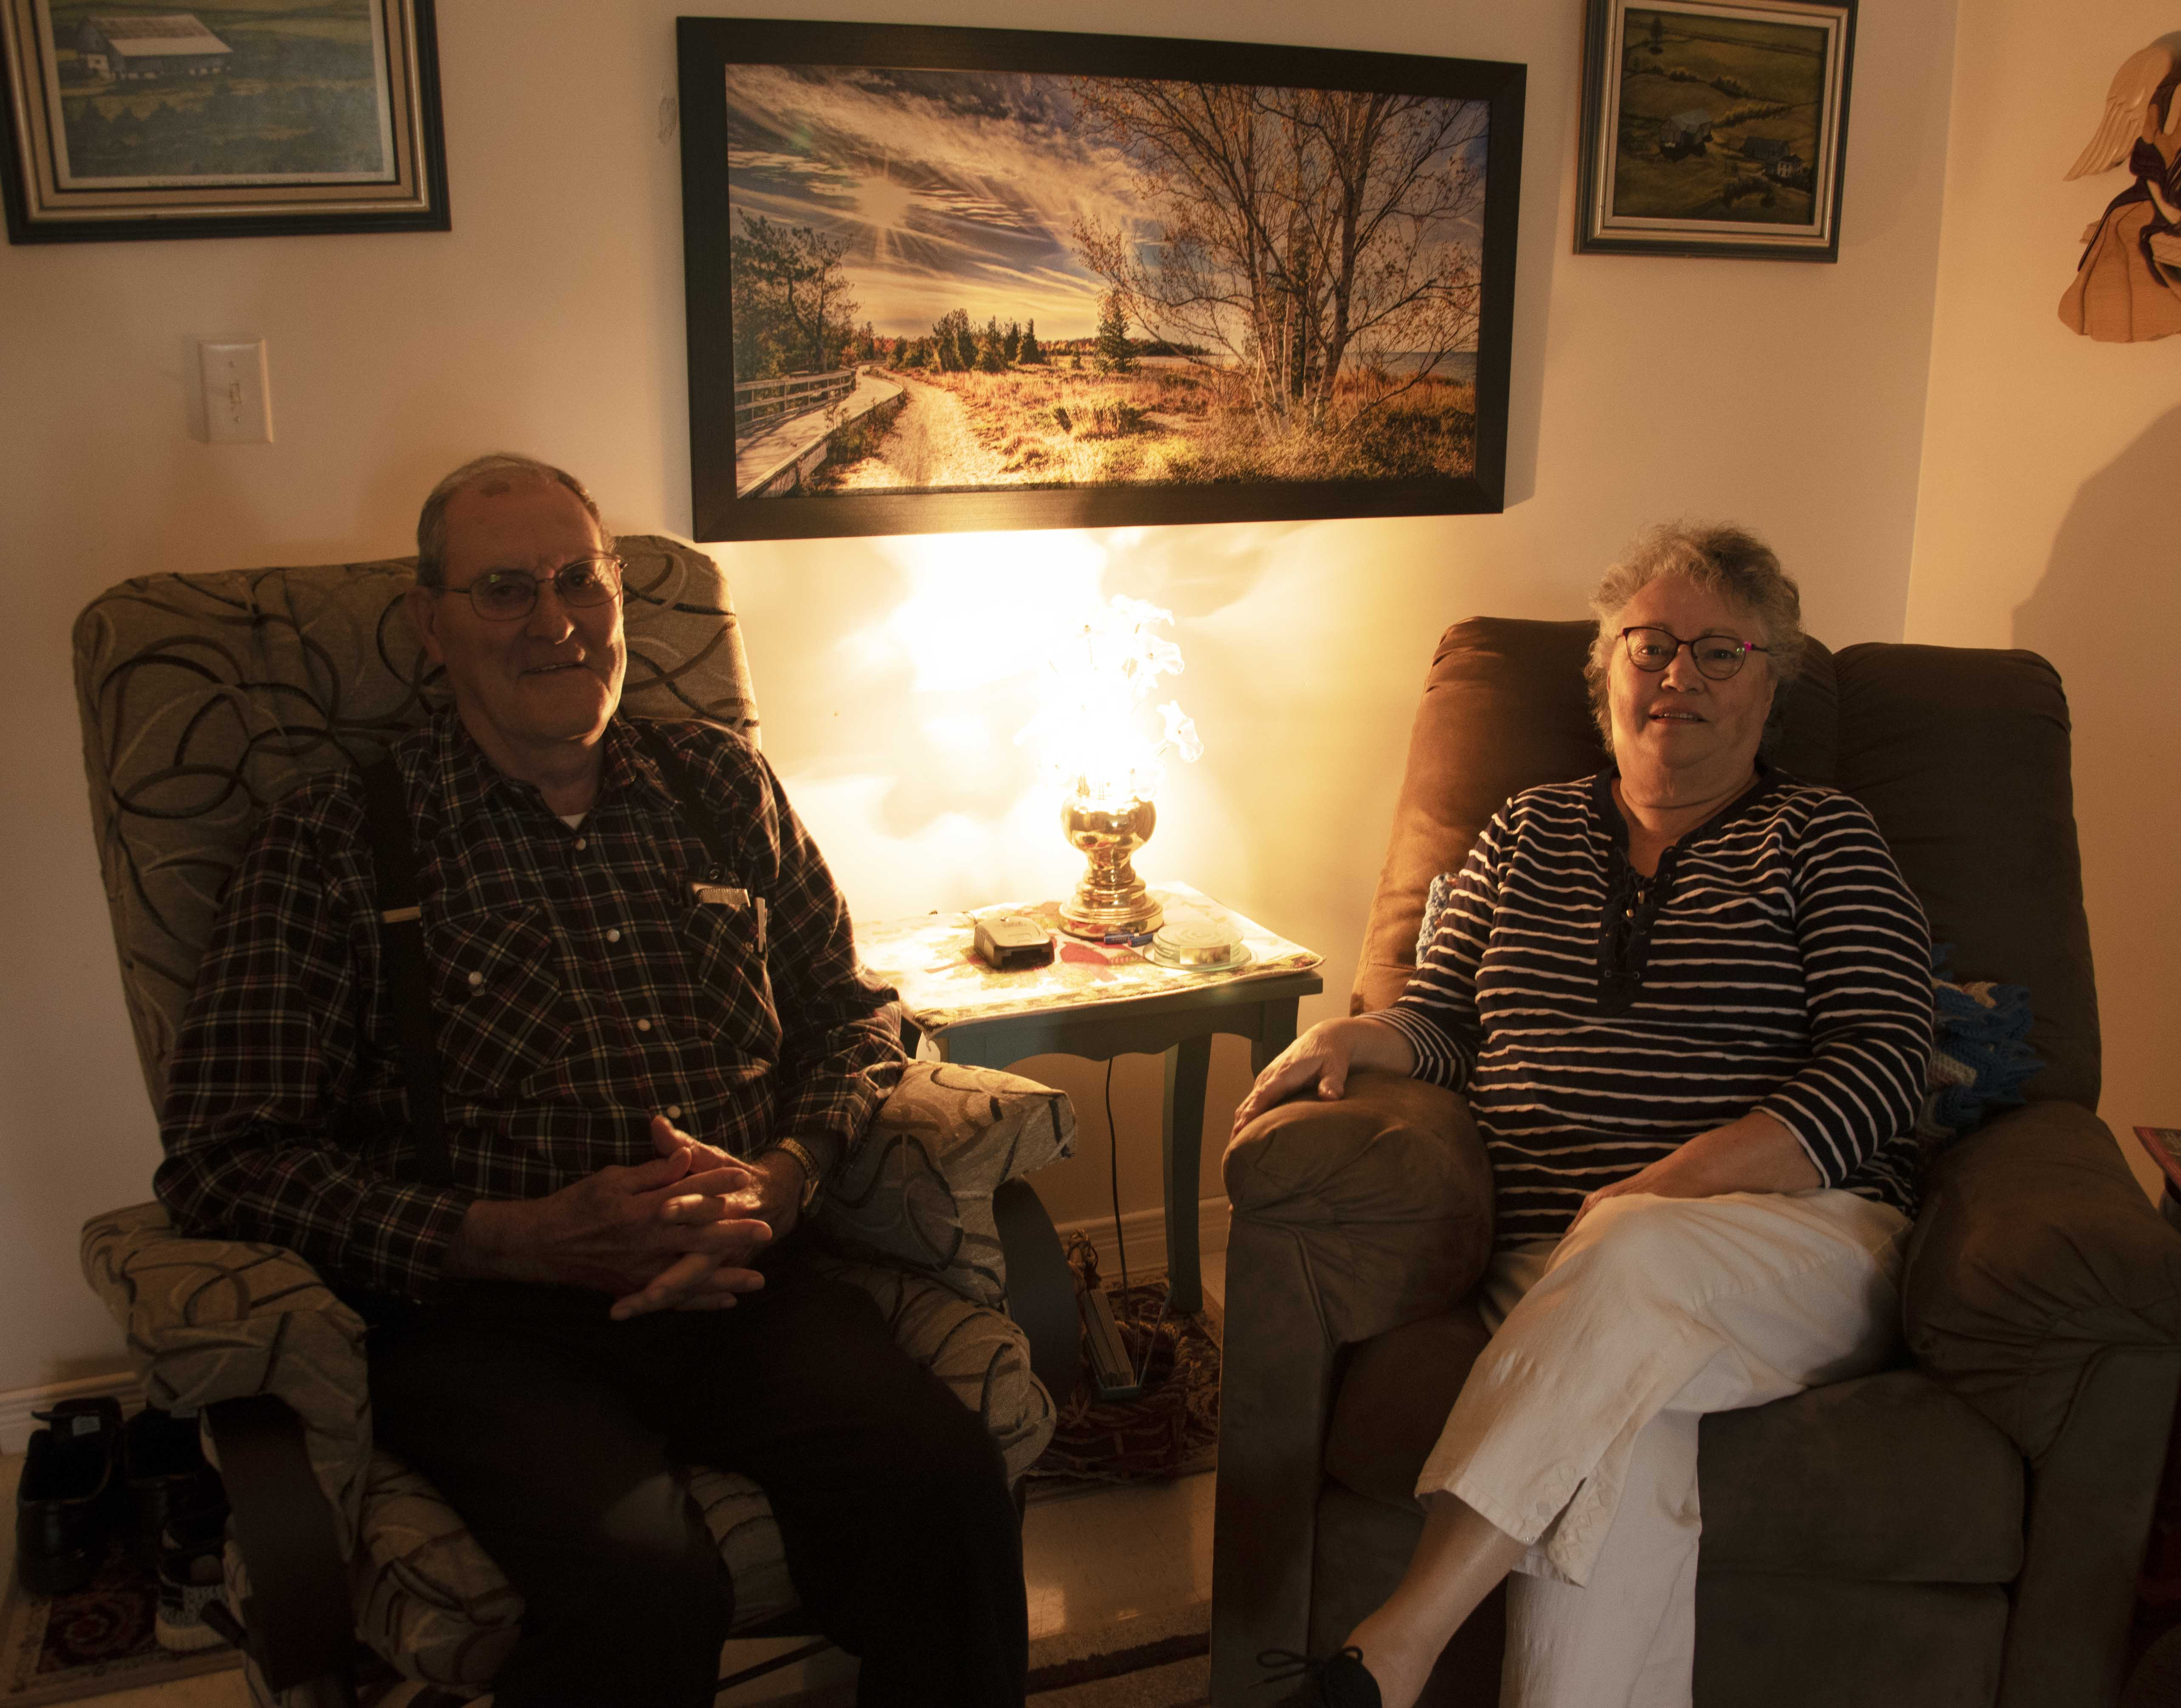 NT a recent photo of Fred and Carolyn relaxing at home